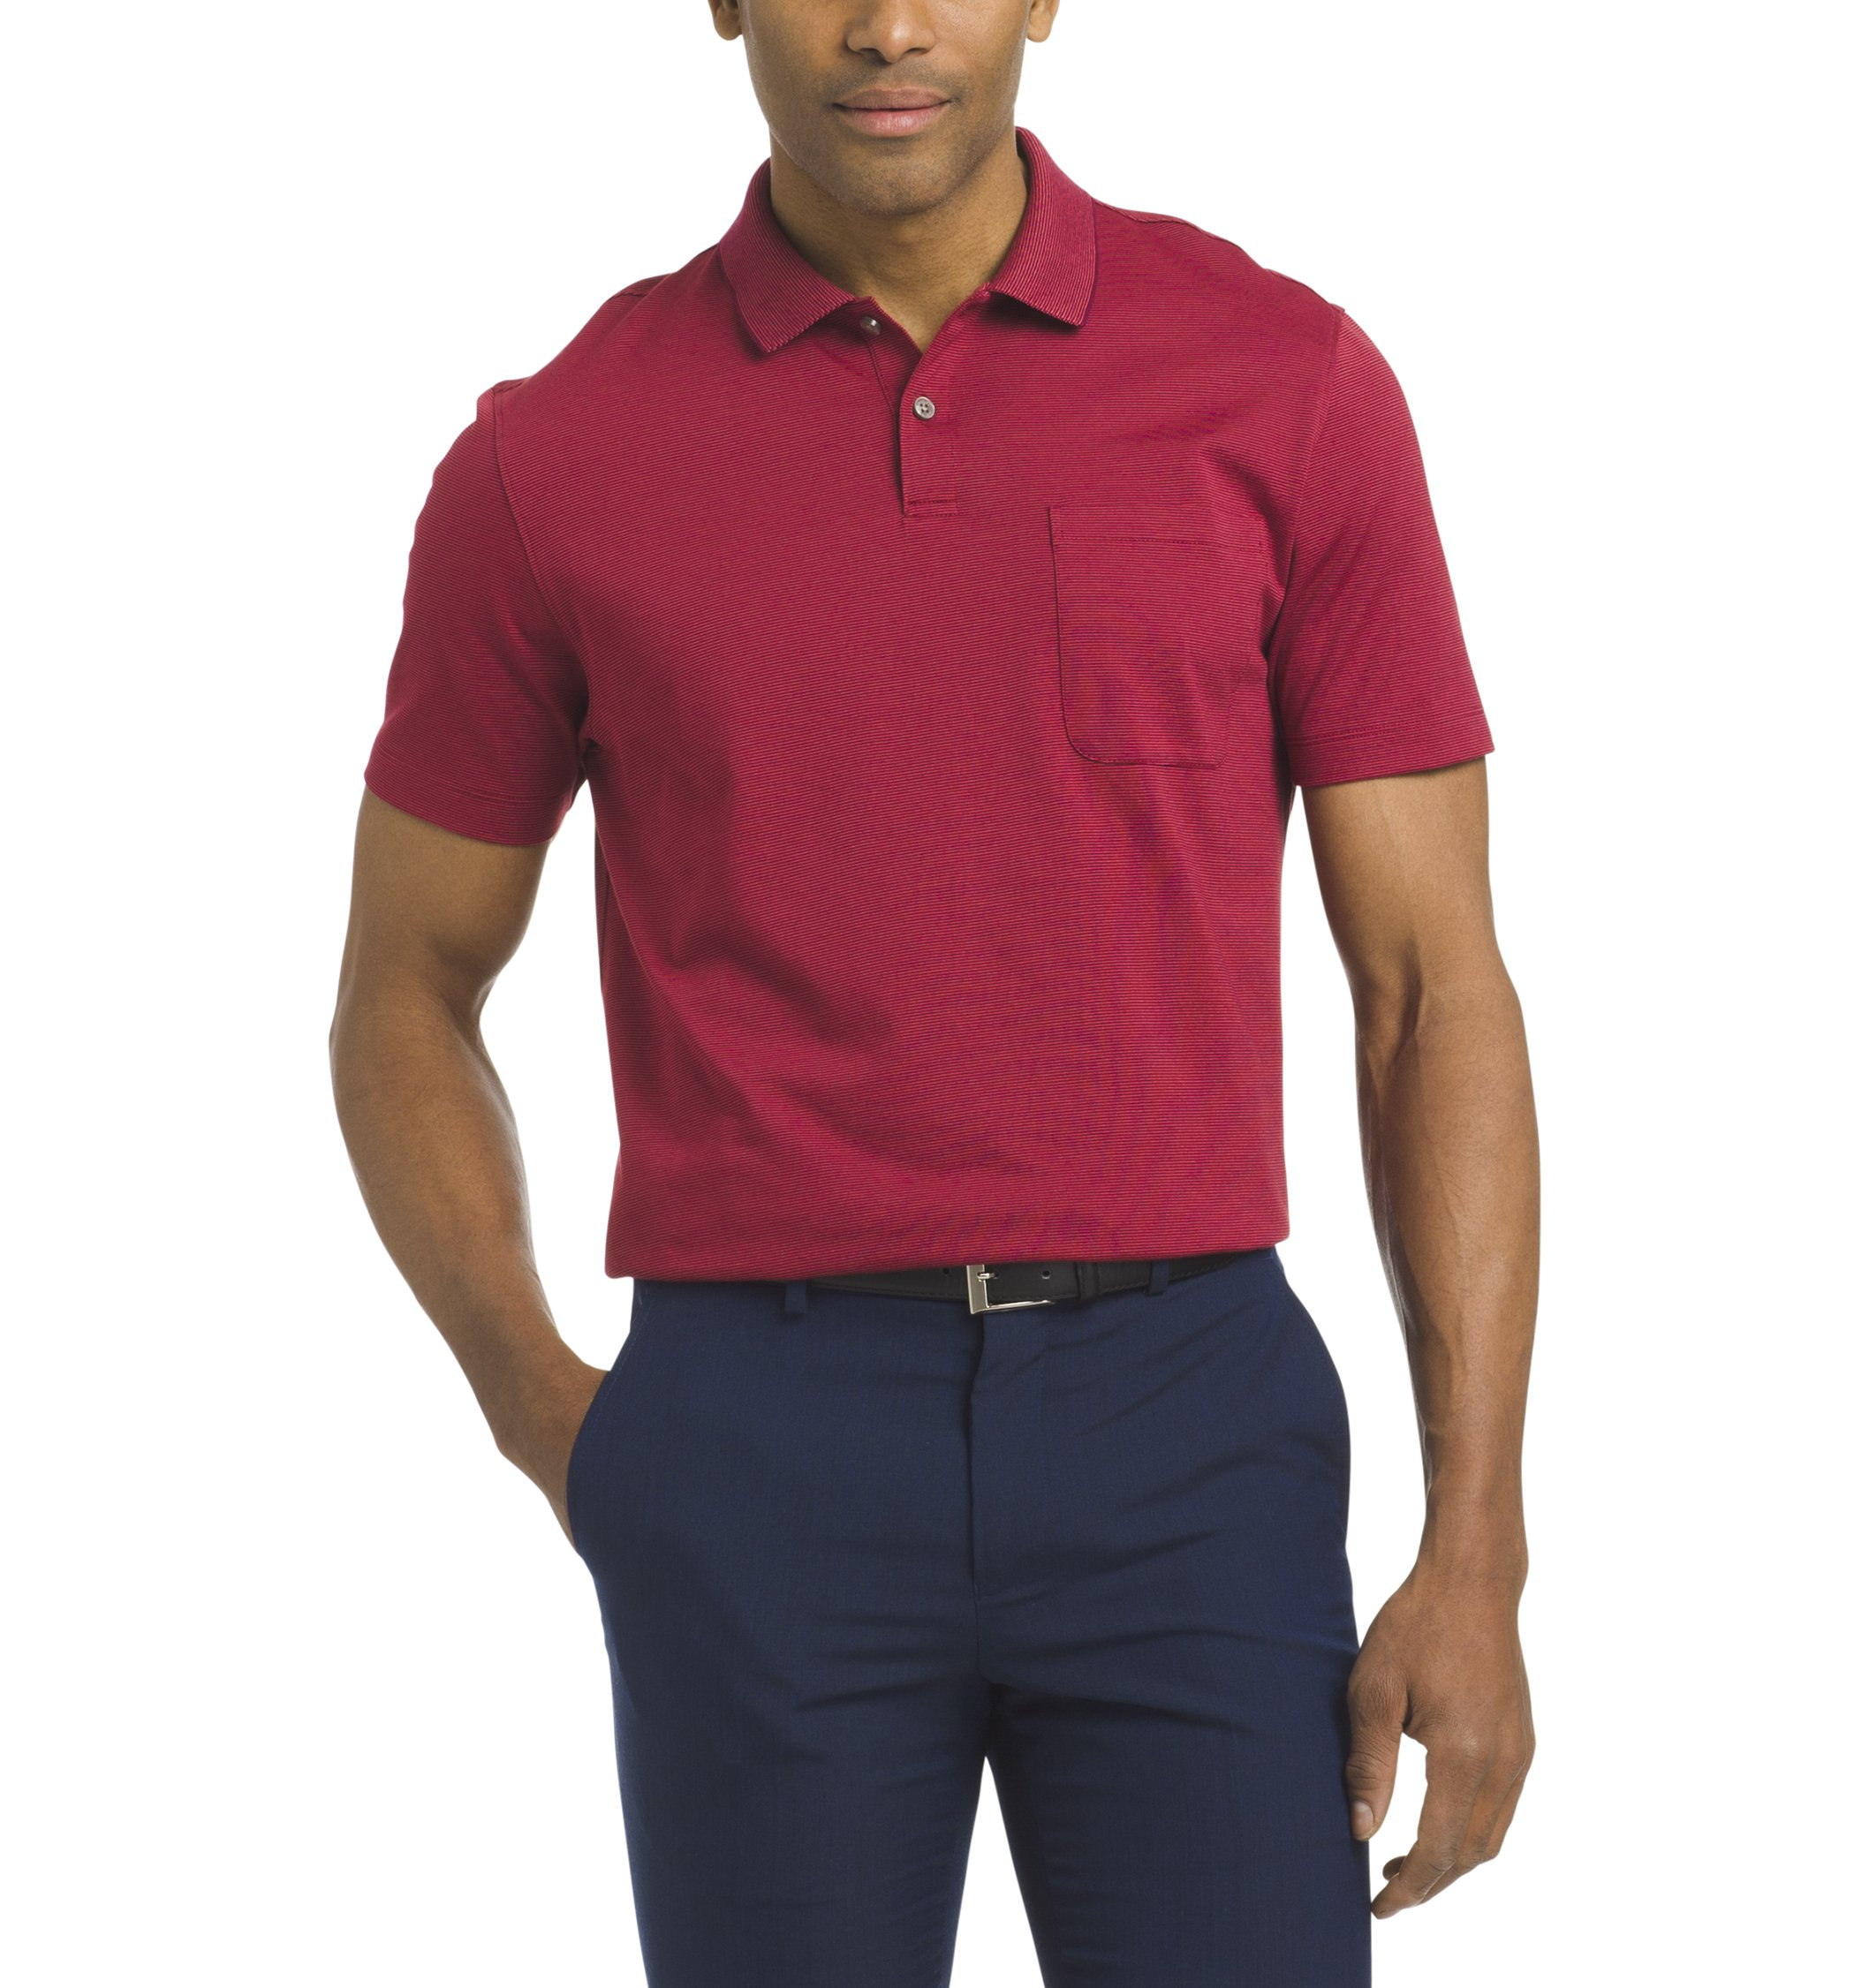 Van Heusen Men's Jacquard Stripe Short Sleeve Polo, Rhubarb, XX-Large